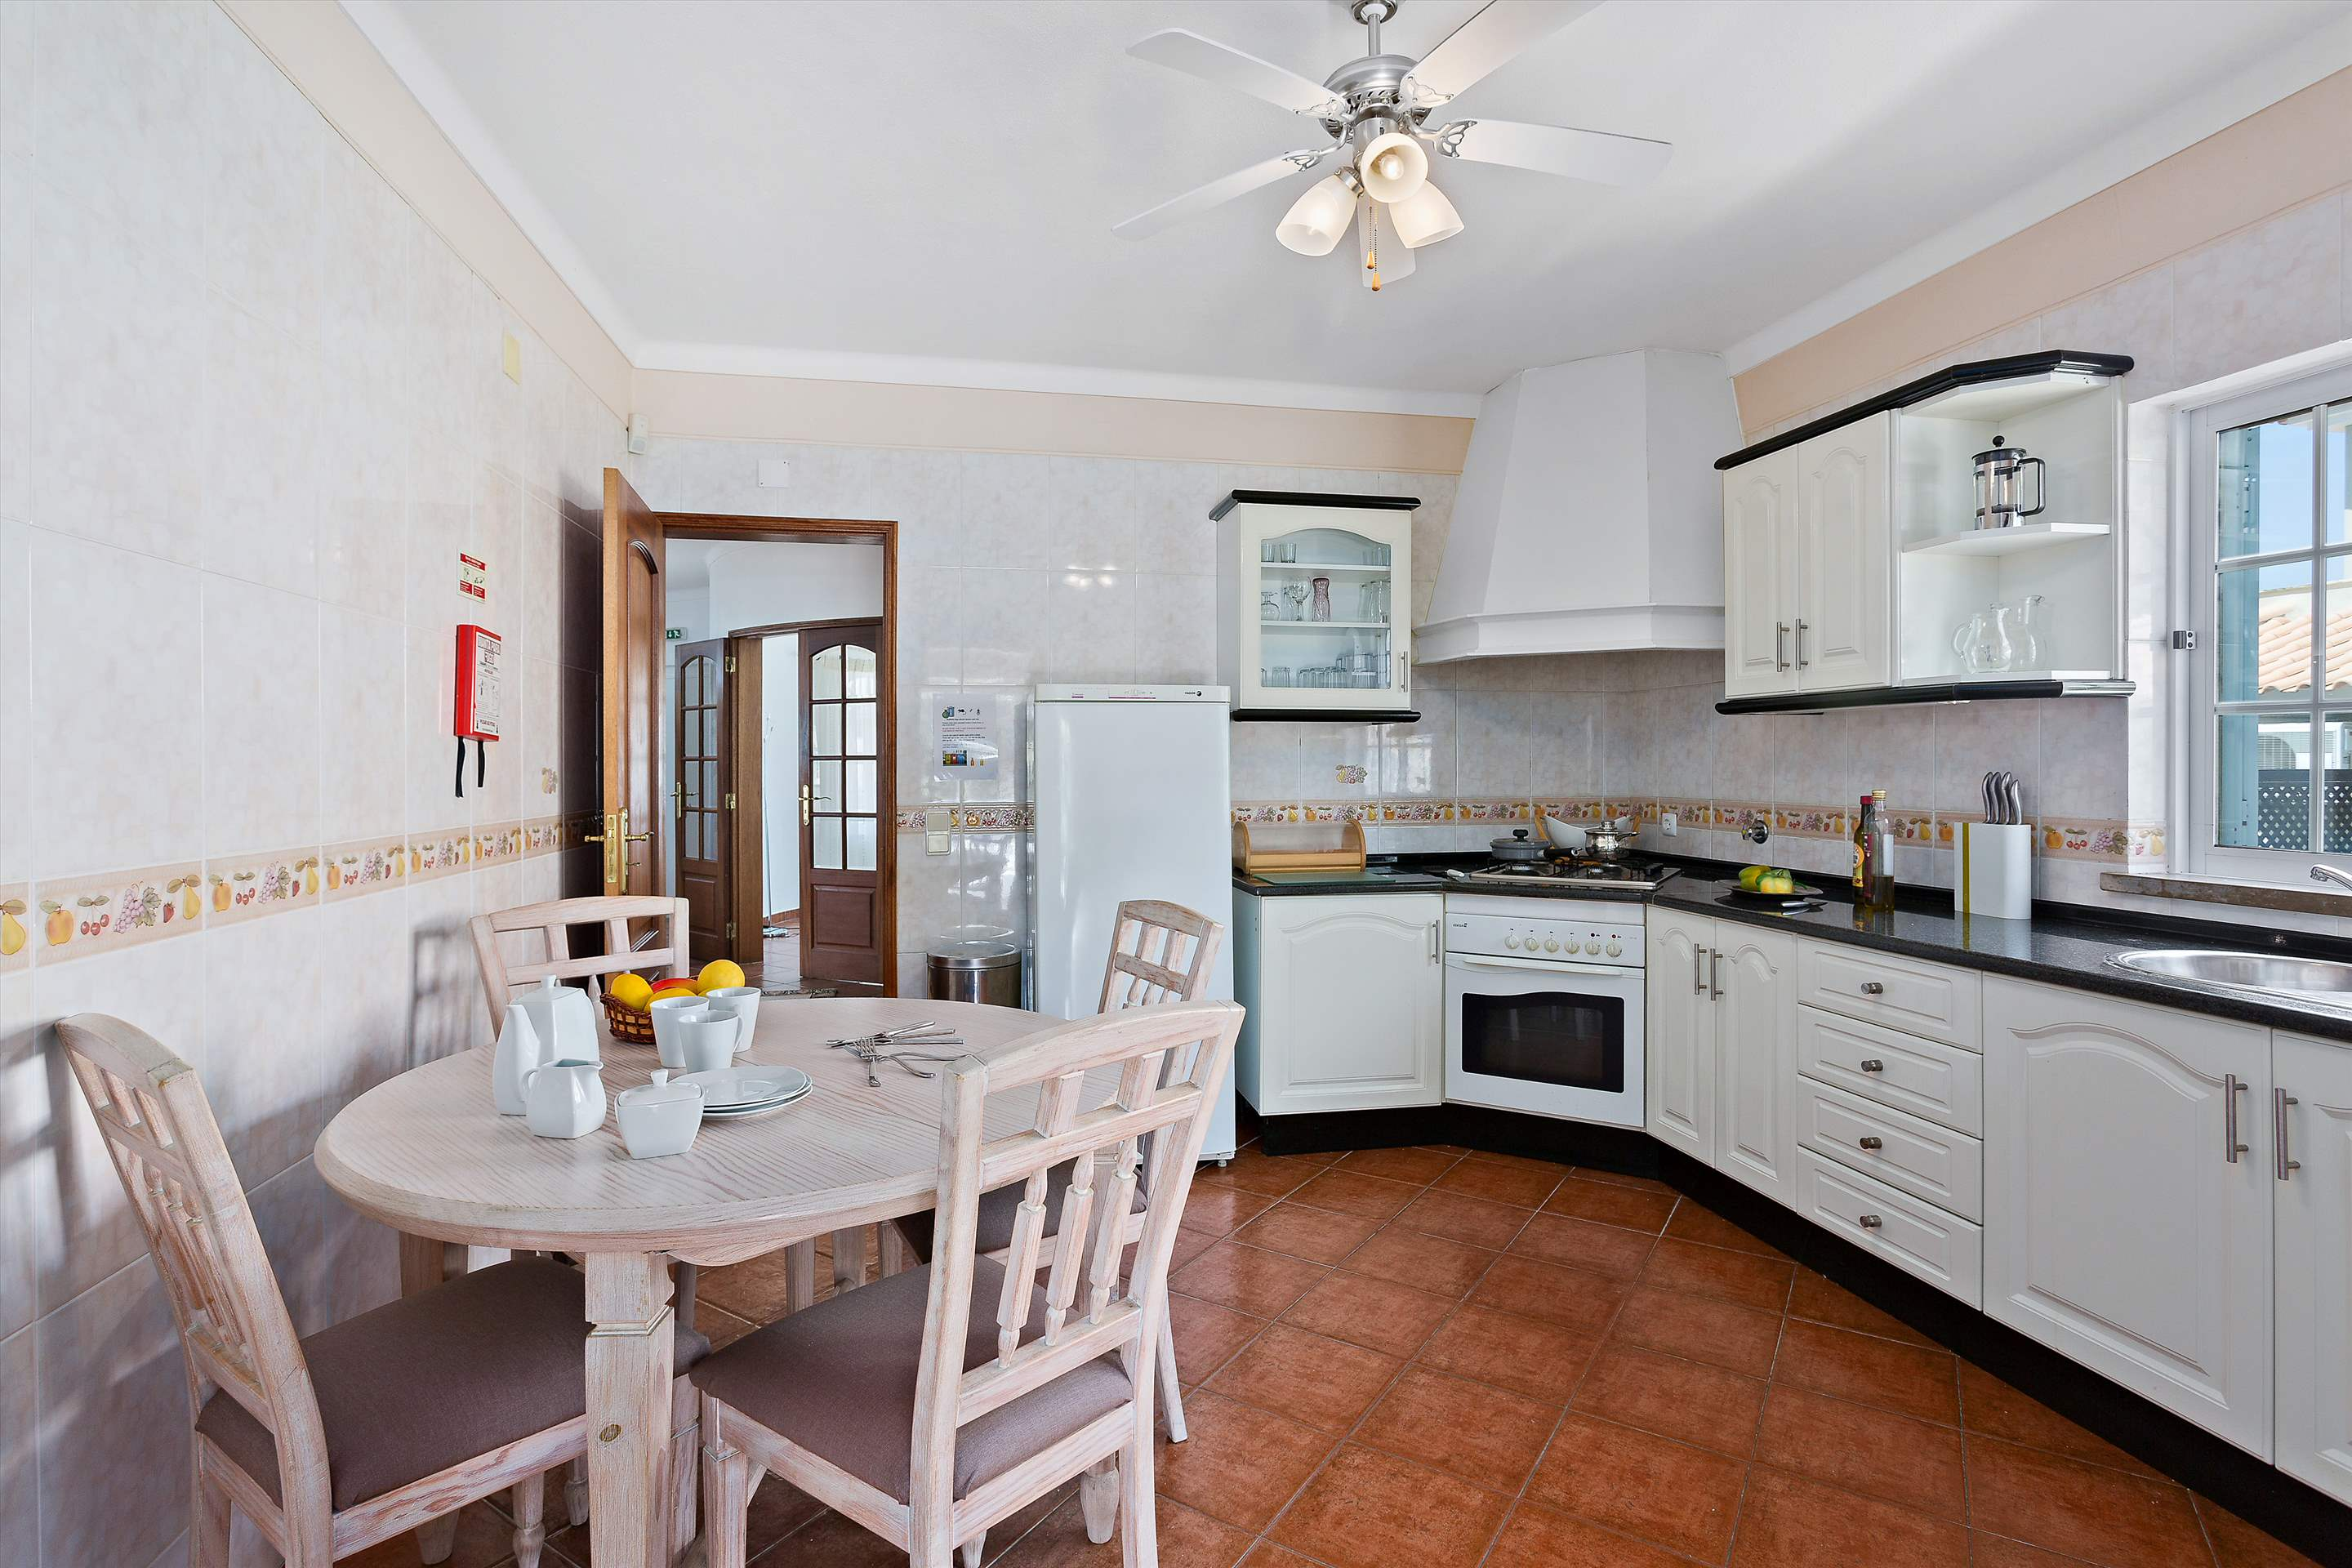 Villa Casablanca, 4 bedroom villa in Vilamoura Area, Algarve Photo #9